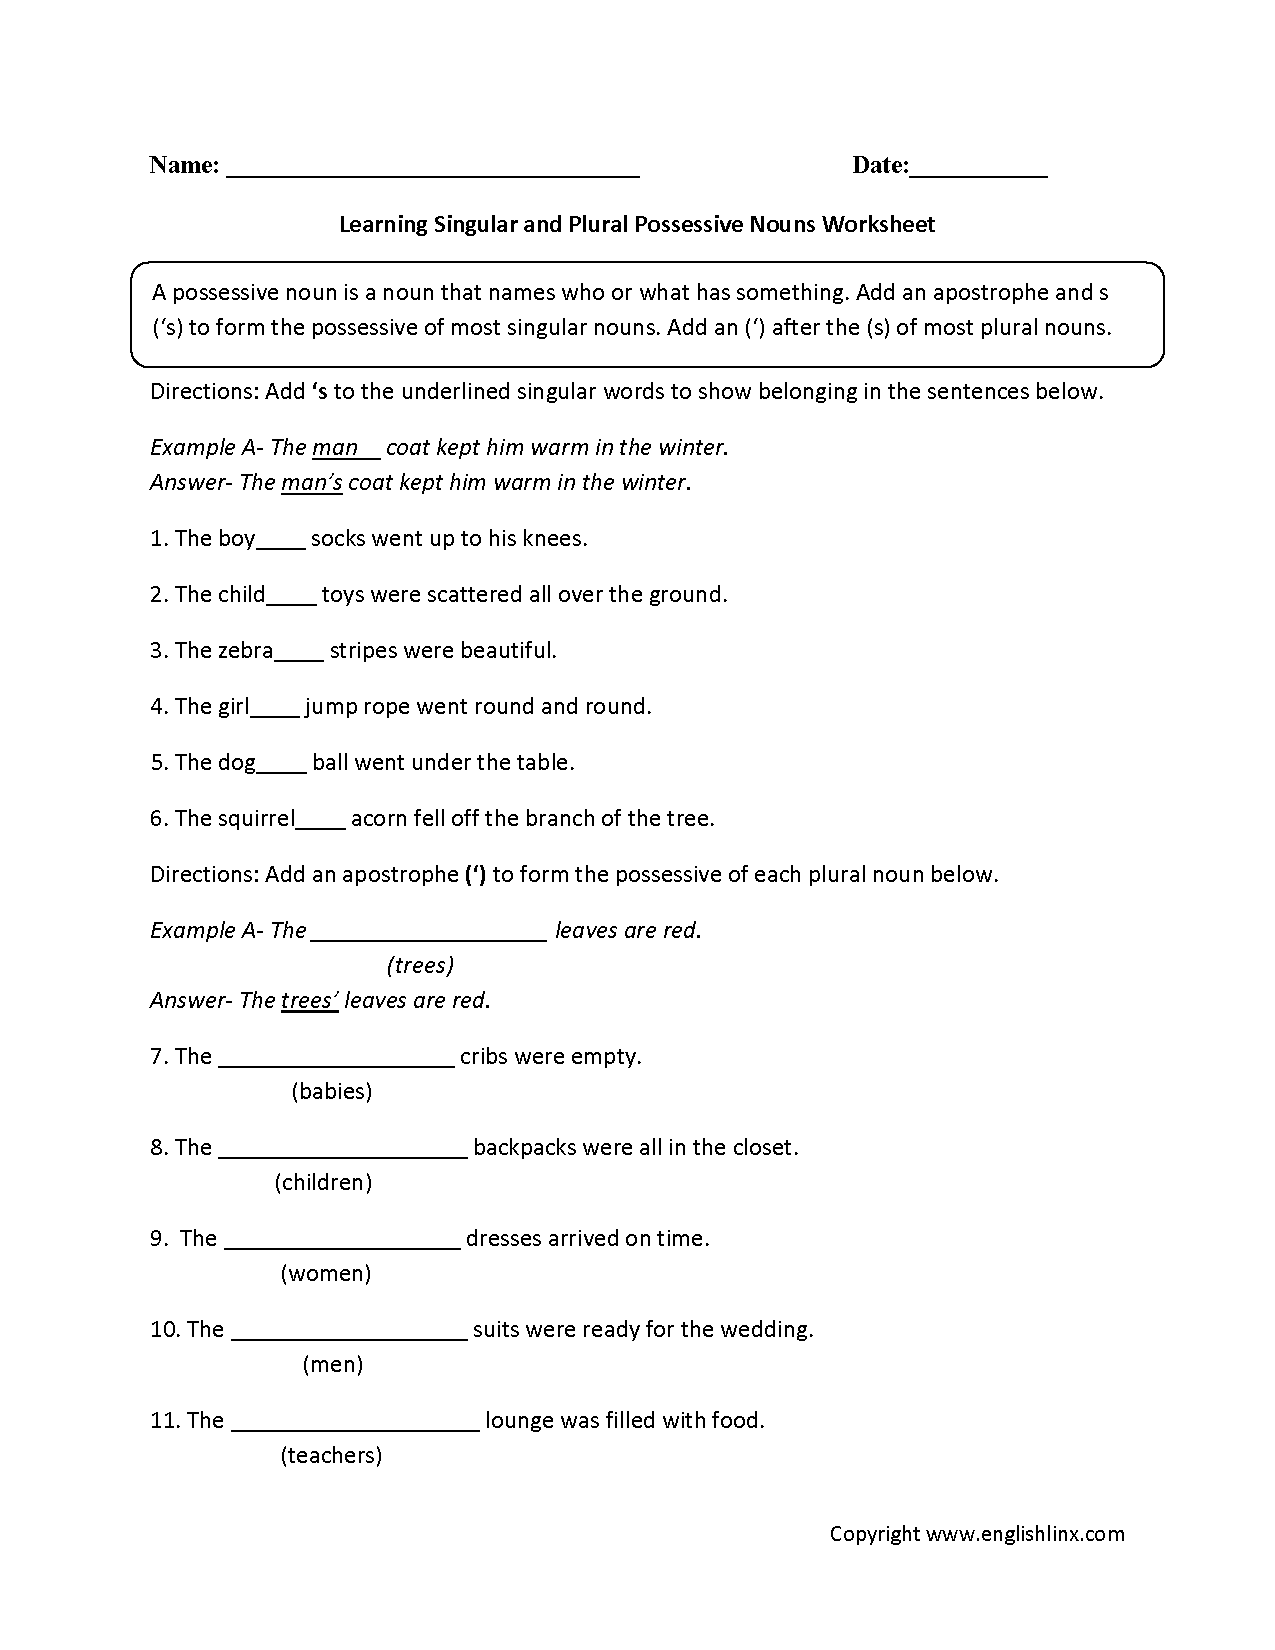 worksheet Plural Possessive Nouns Worksheets nouns worksheets possessive grades 9 12 worksheets